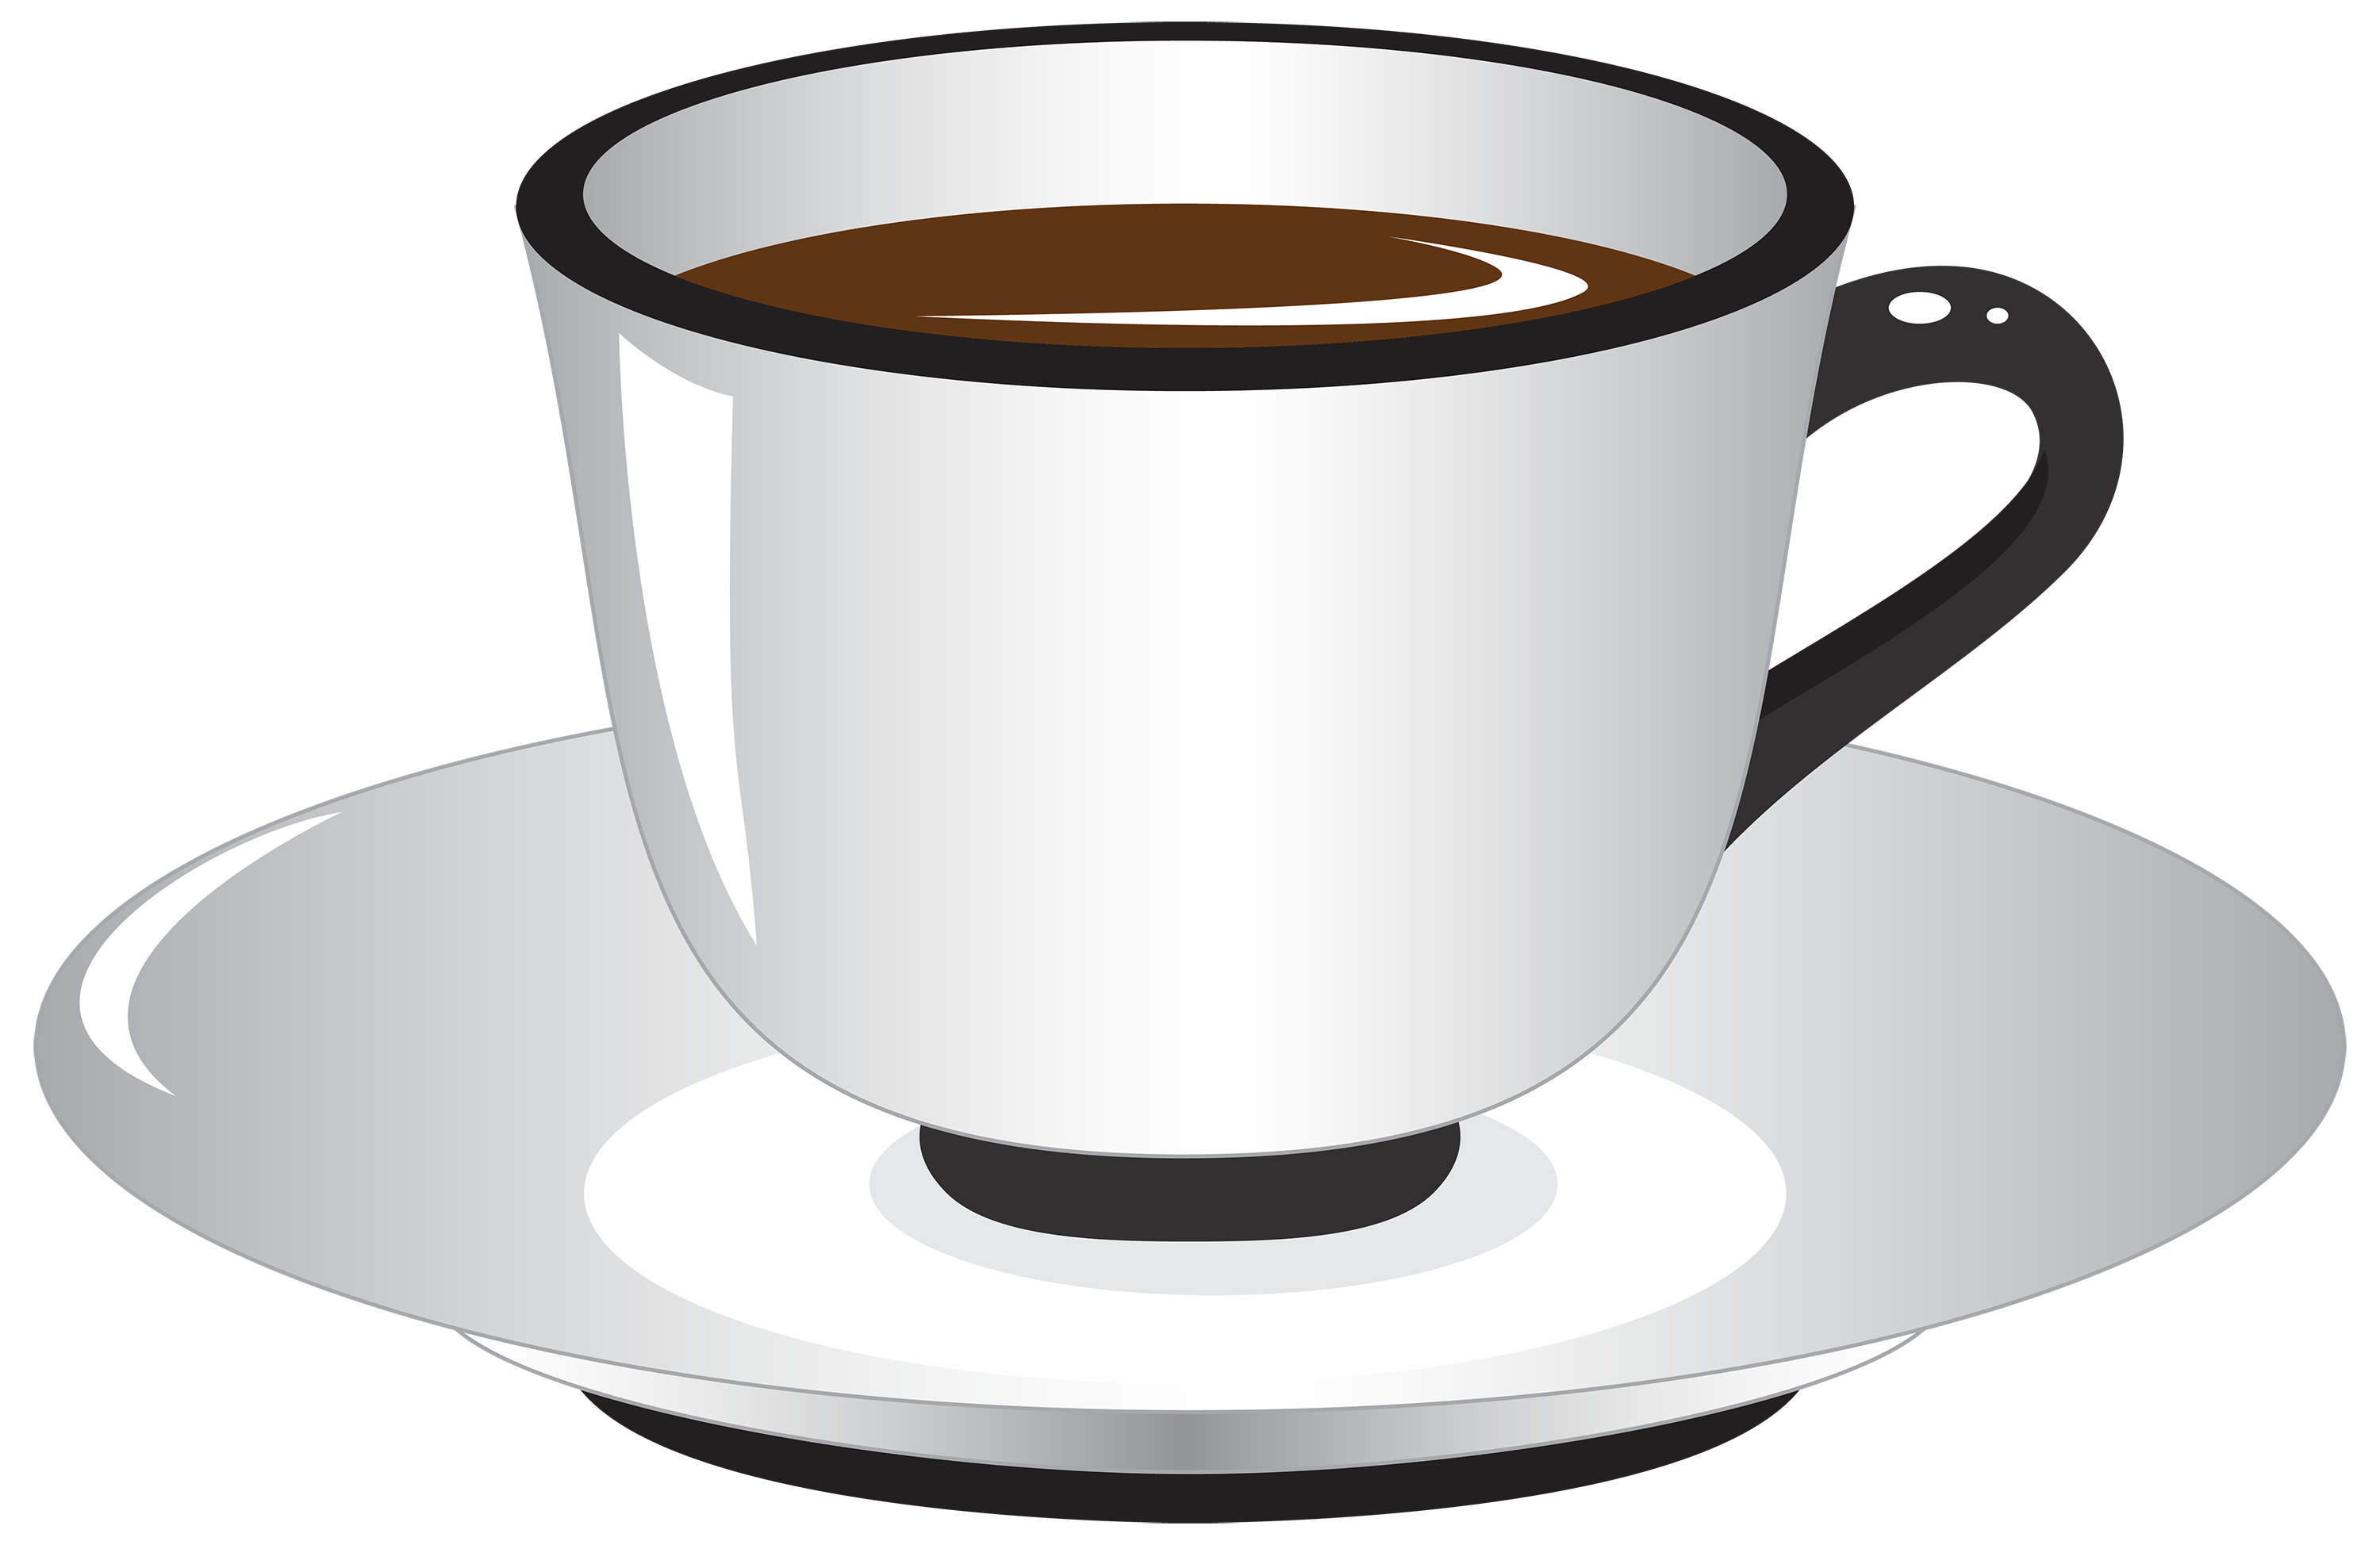 Coffee clipart image #8252